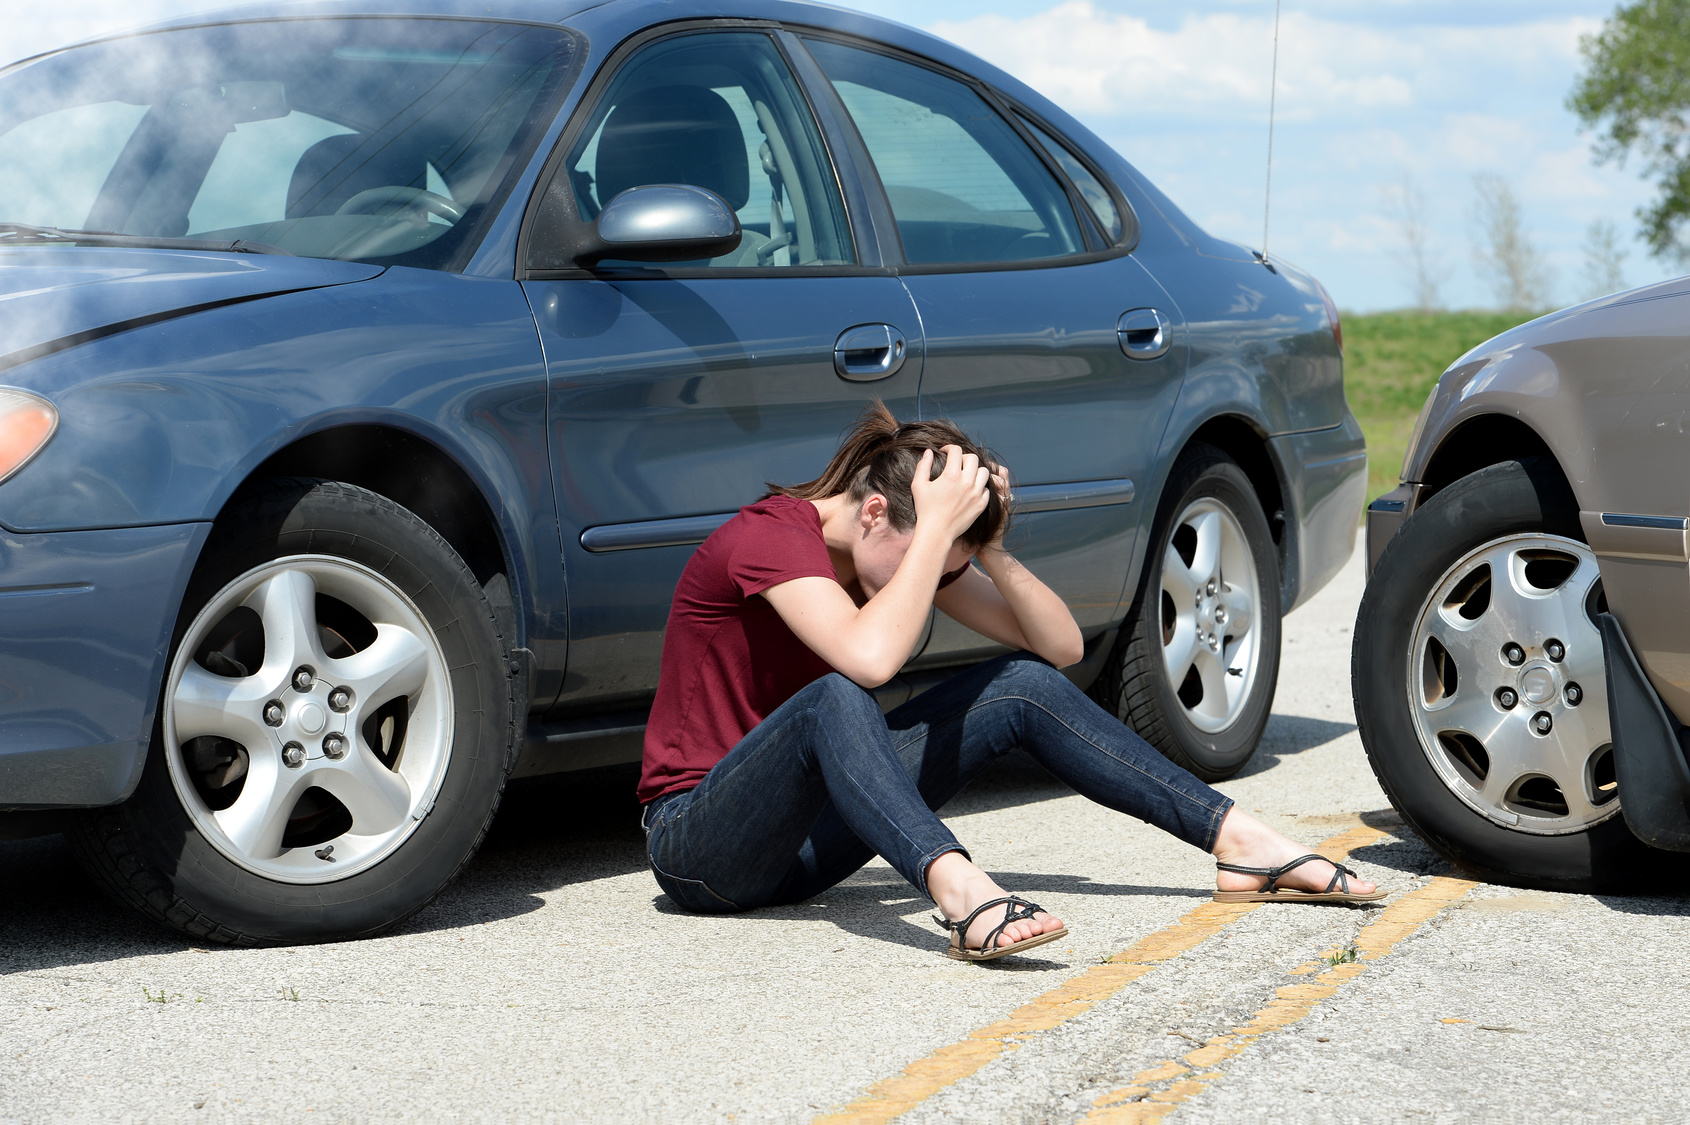 The Leading Cause Of Traumatic Brain Injury Is Auto Accidents